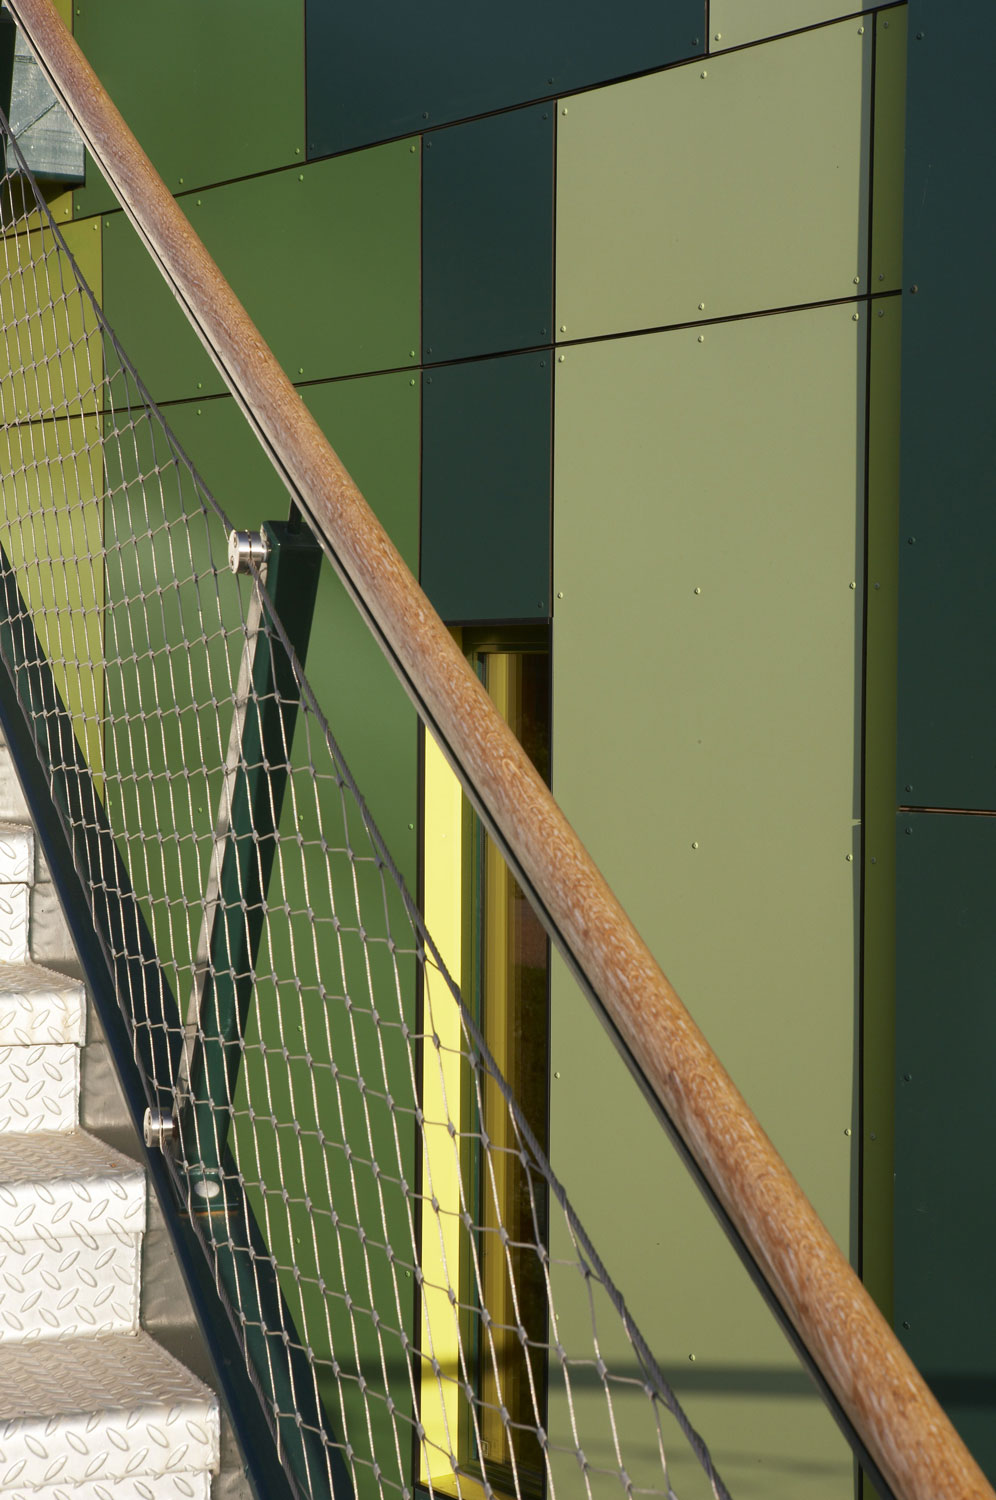 No. 1 Nottingham Science Park staircase and cladding detail | Architectural Photography London